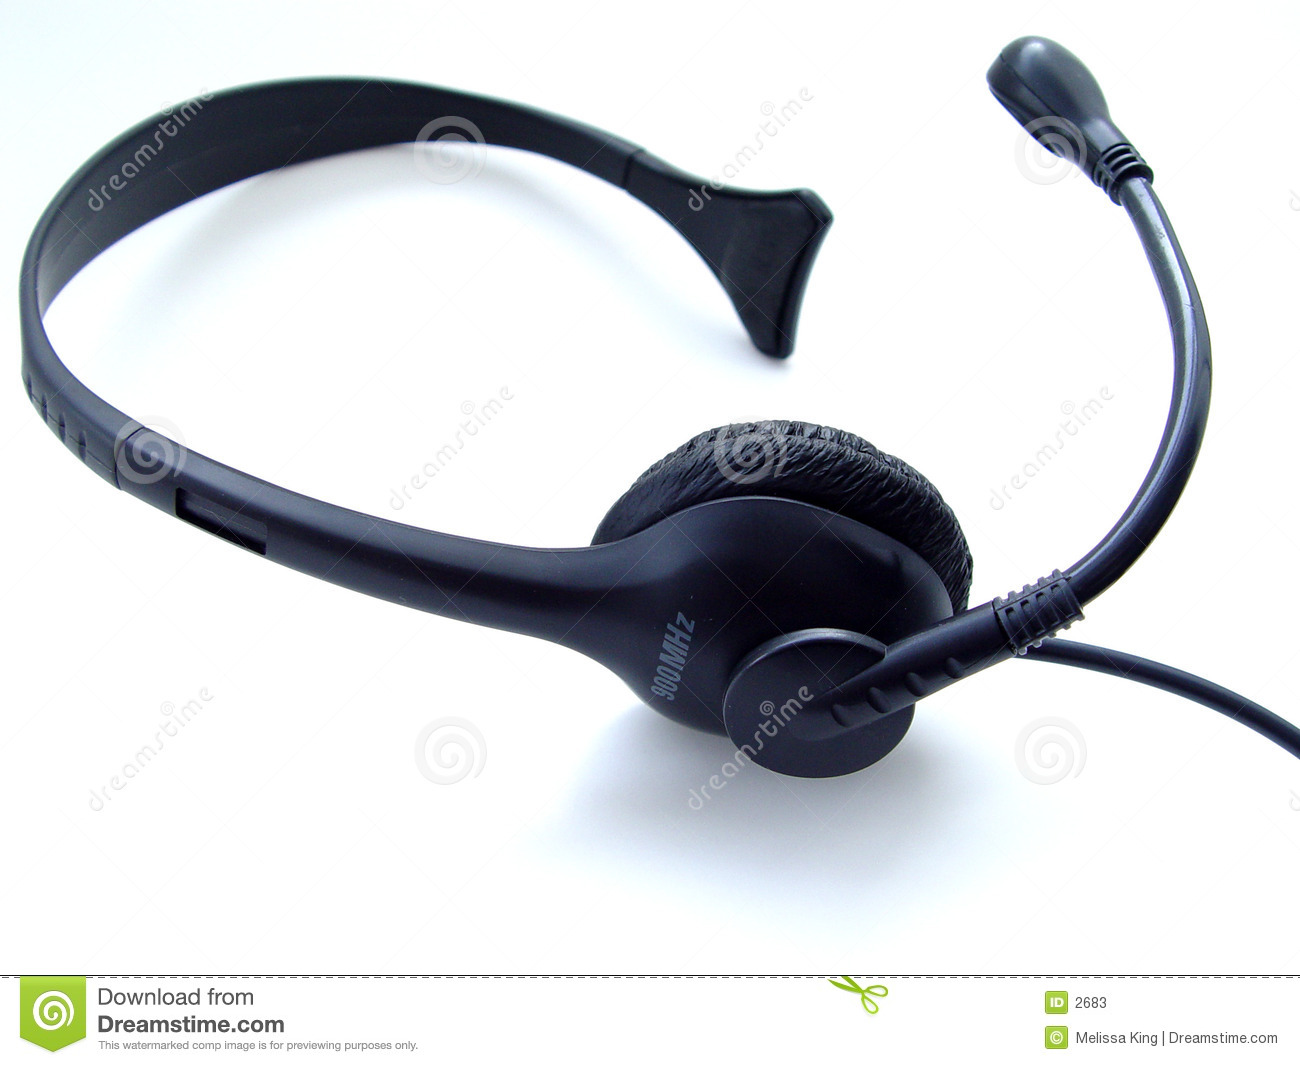 Auriculares isolados